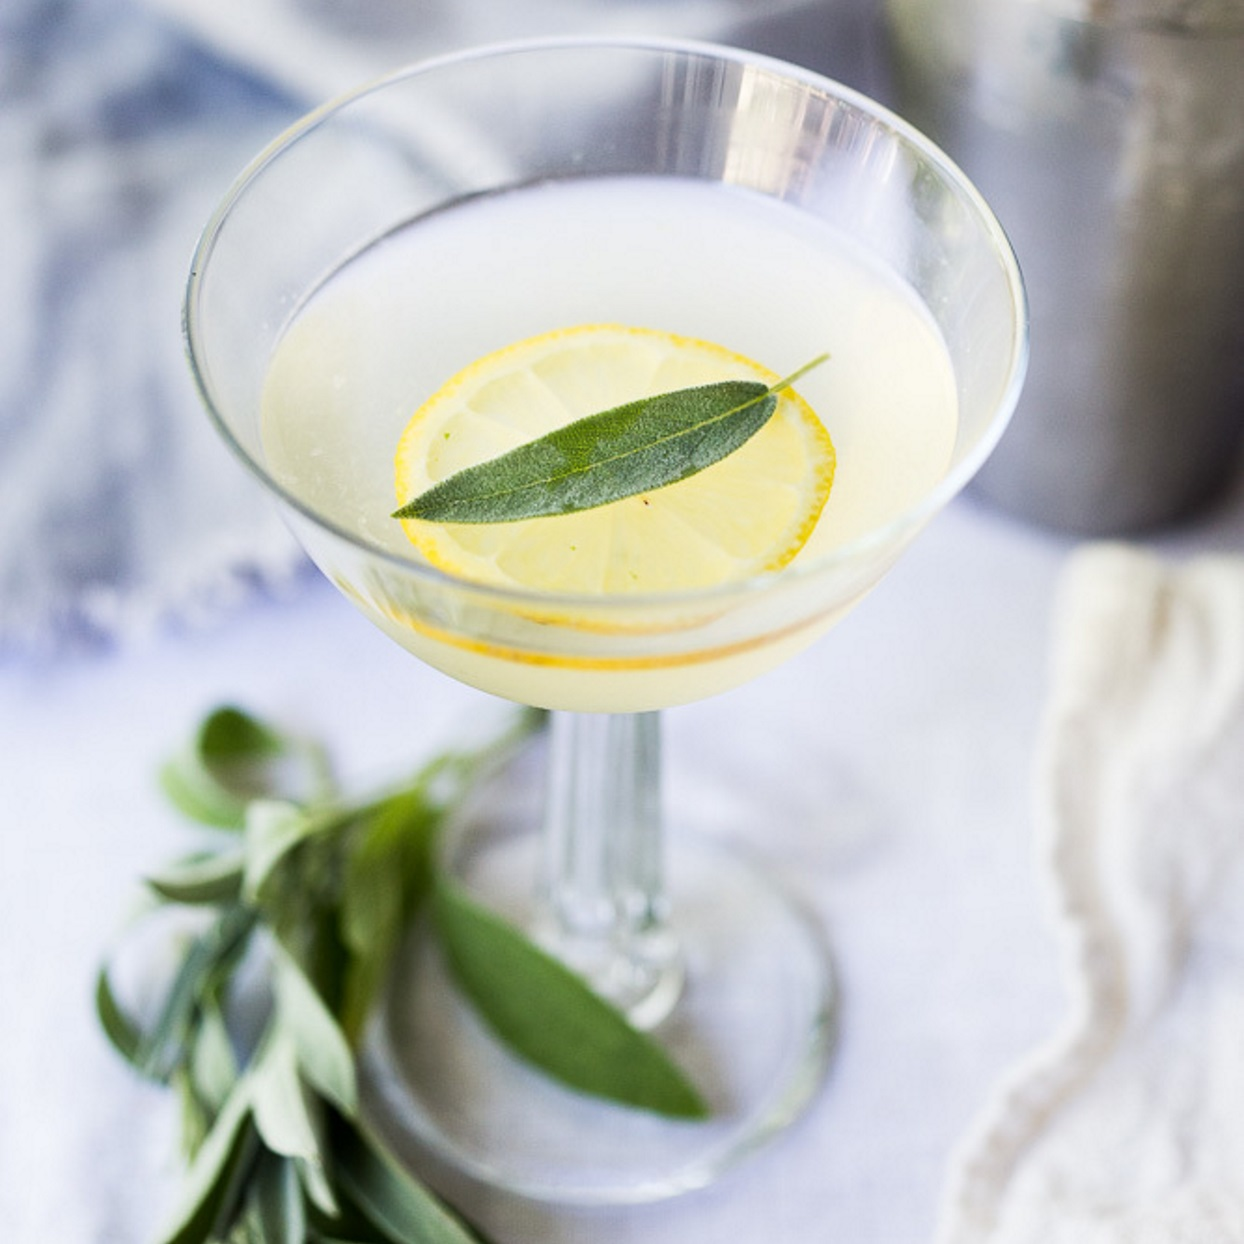 Bright and refreshing, this gin gimlet is made with sage-infused simple syrup and muddled fresh sage. This light and festive cocktail is perfect for fall gatherings, such as Thanksgiving. This recipe makes enough simple syrup for about 8 cocktails and can easily be doubled for a crowd. Source: EatingWell.com, September 2019